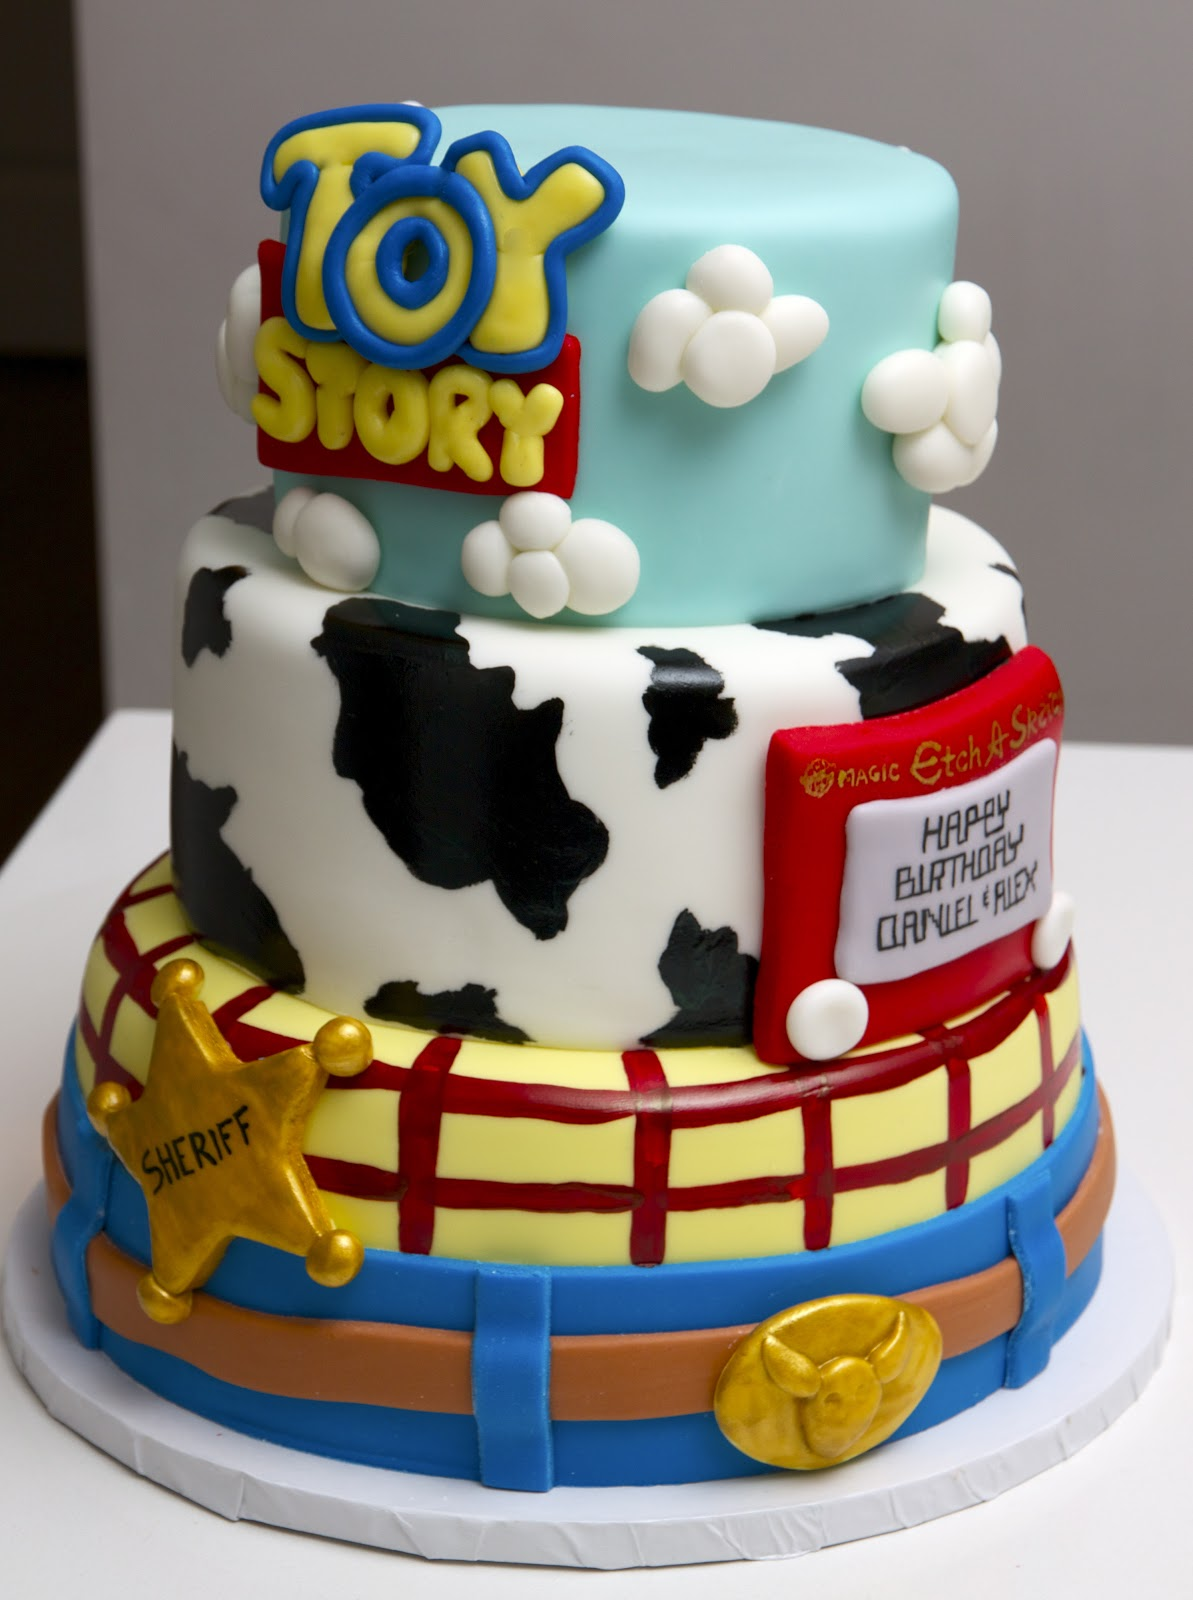 Love Your Cake Toy Story Cake